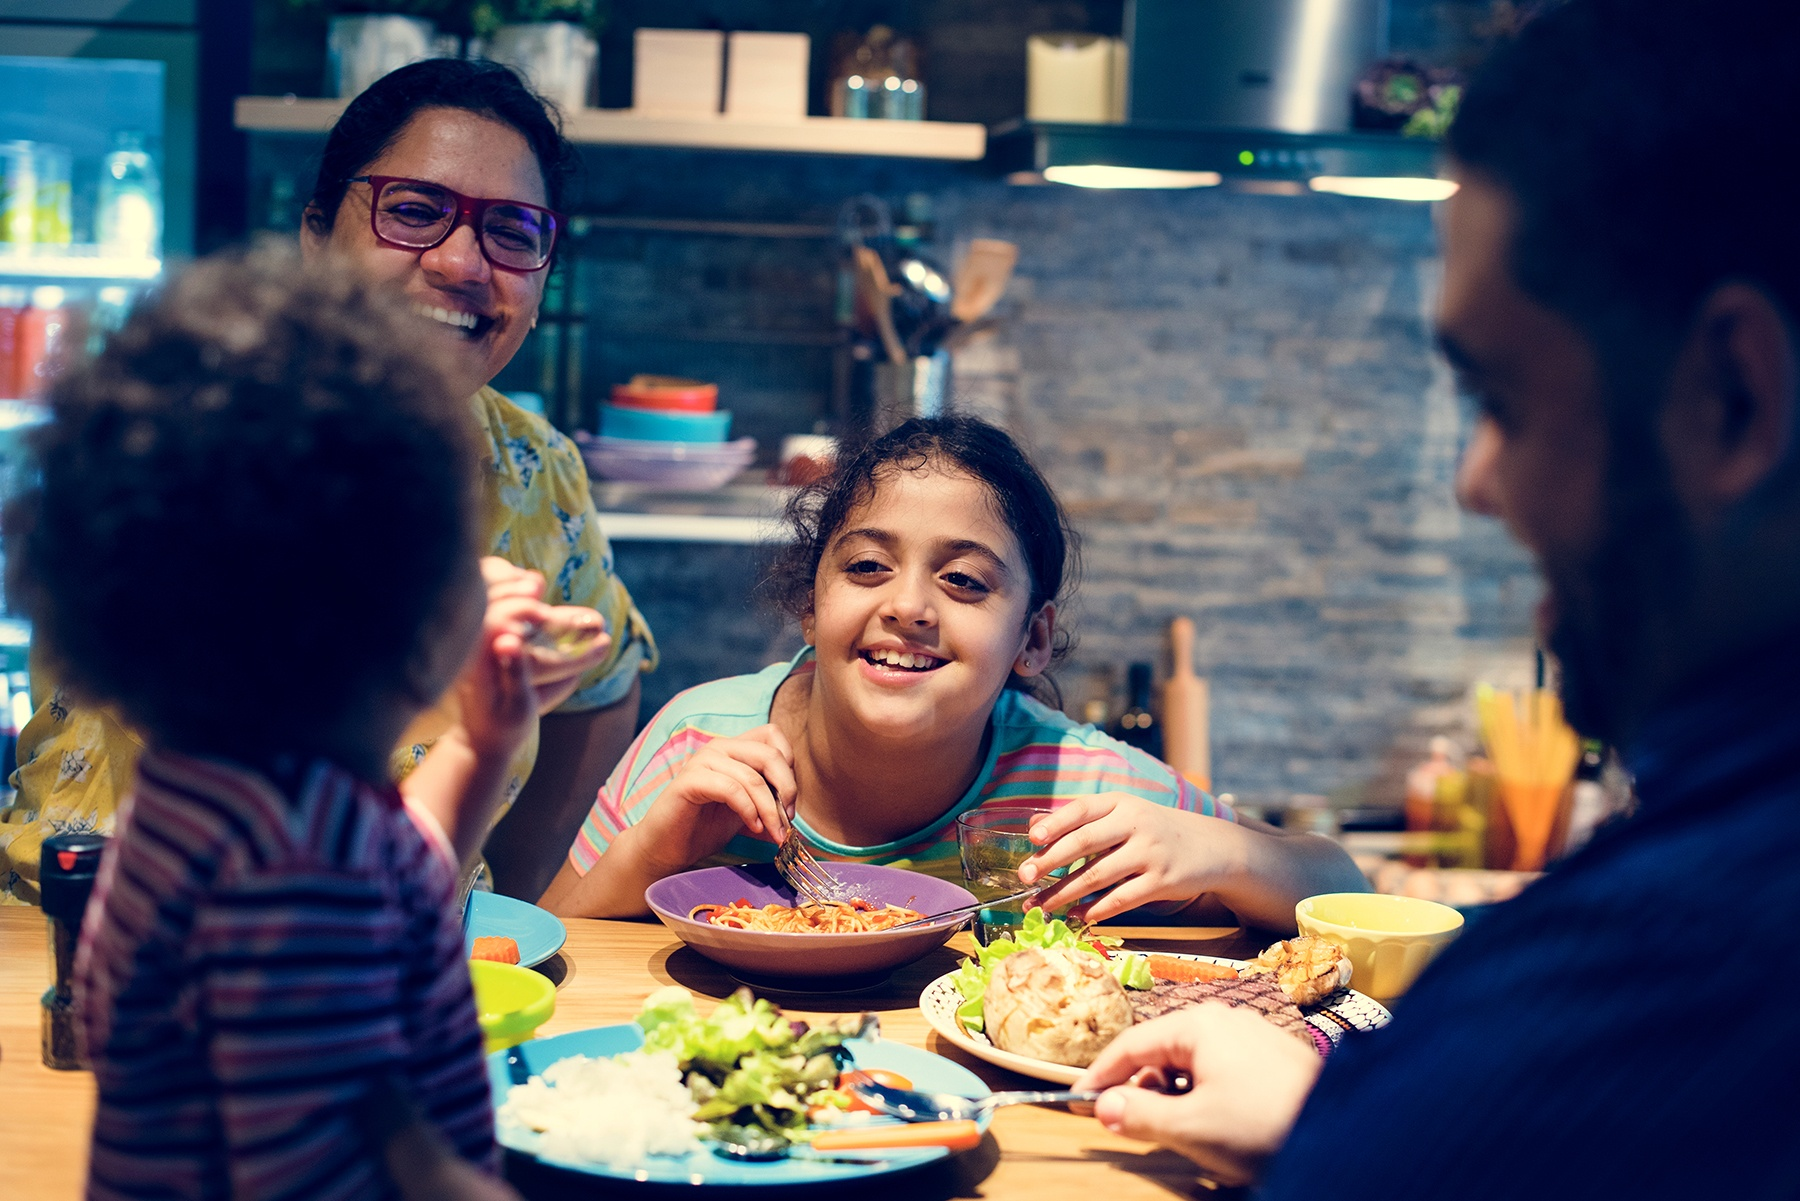 Meals strengthen families: Why eating together matters